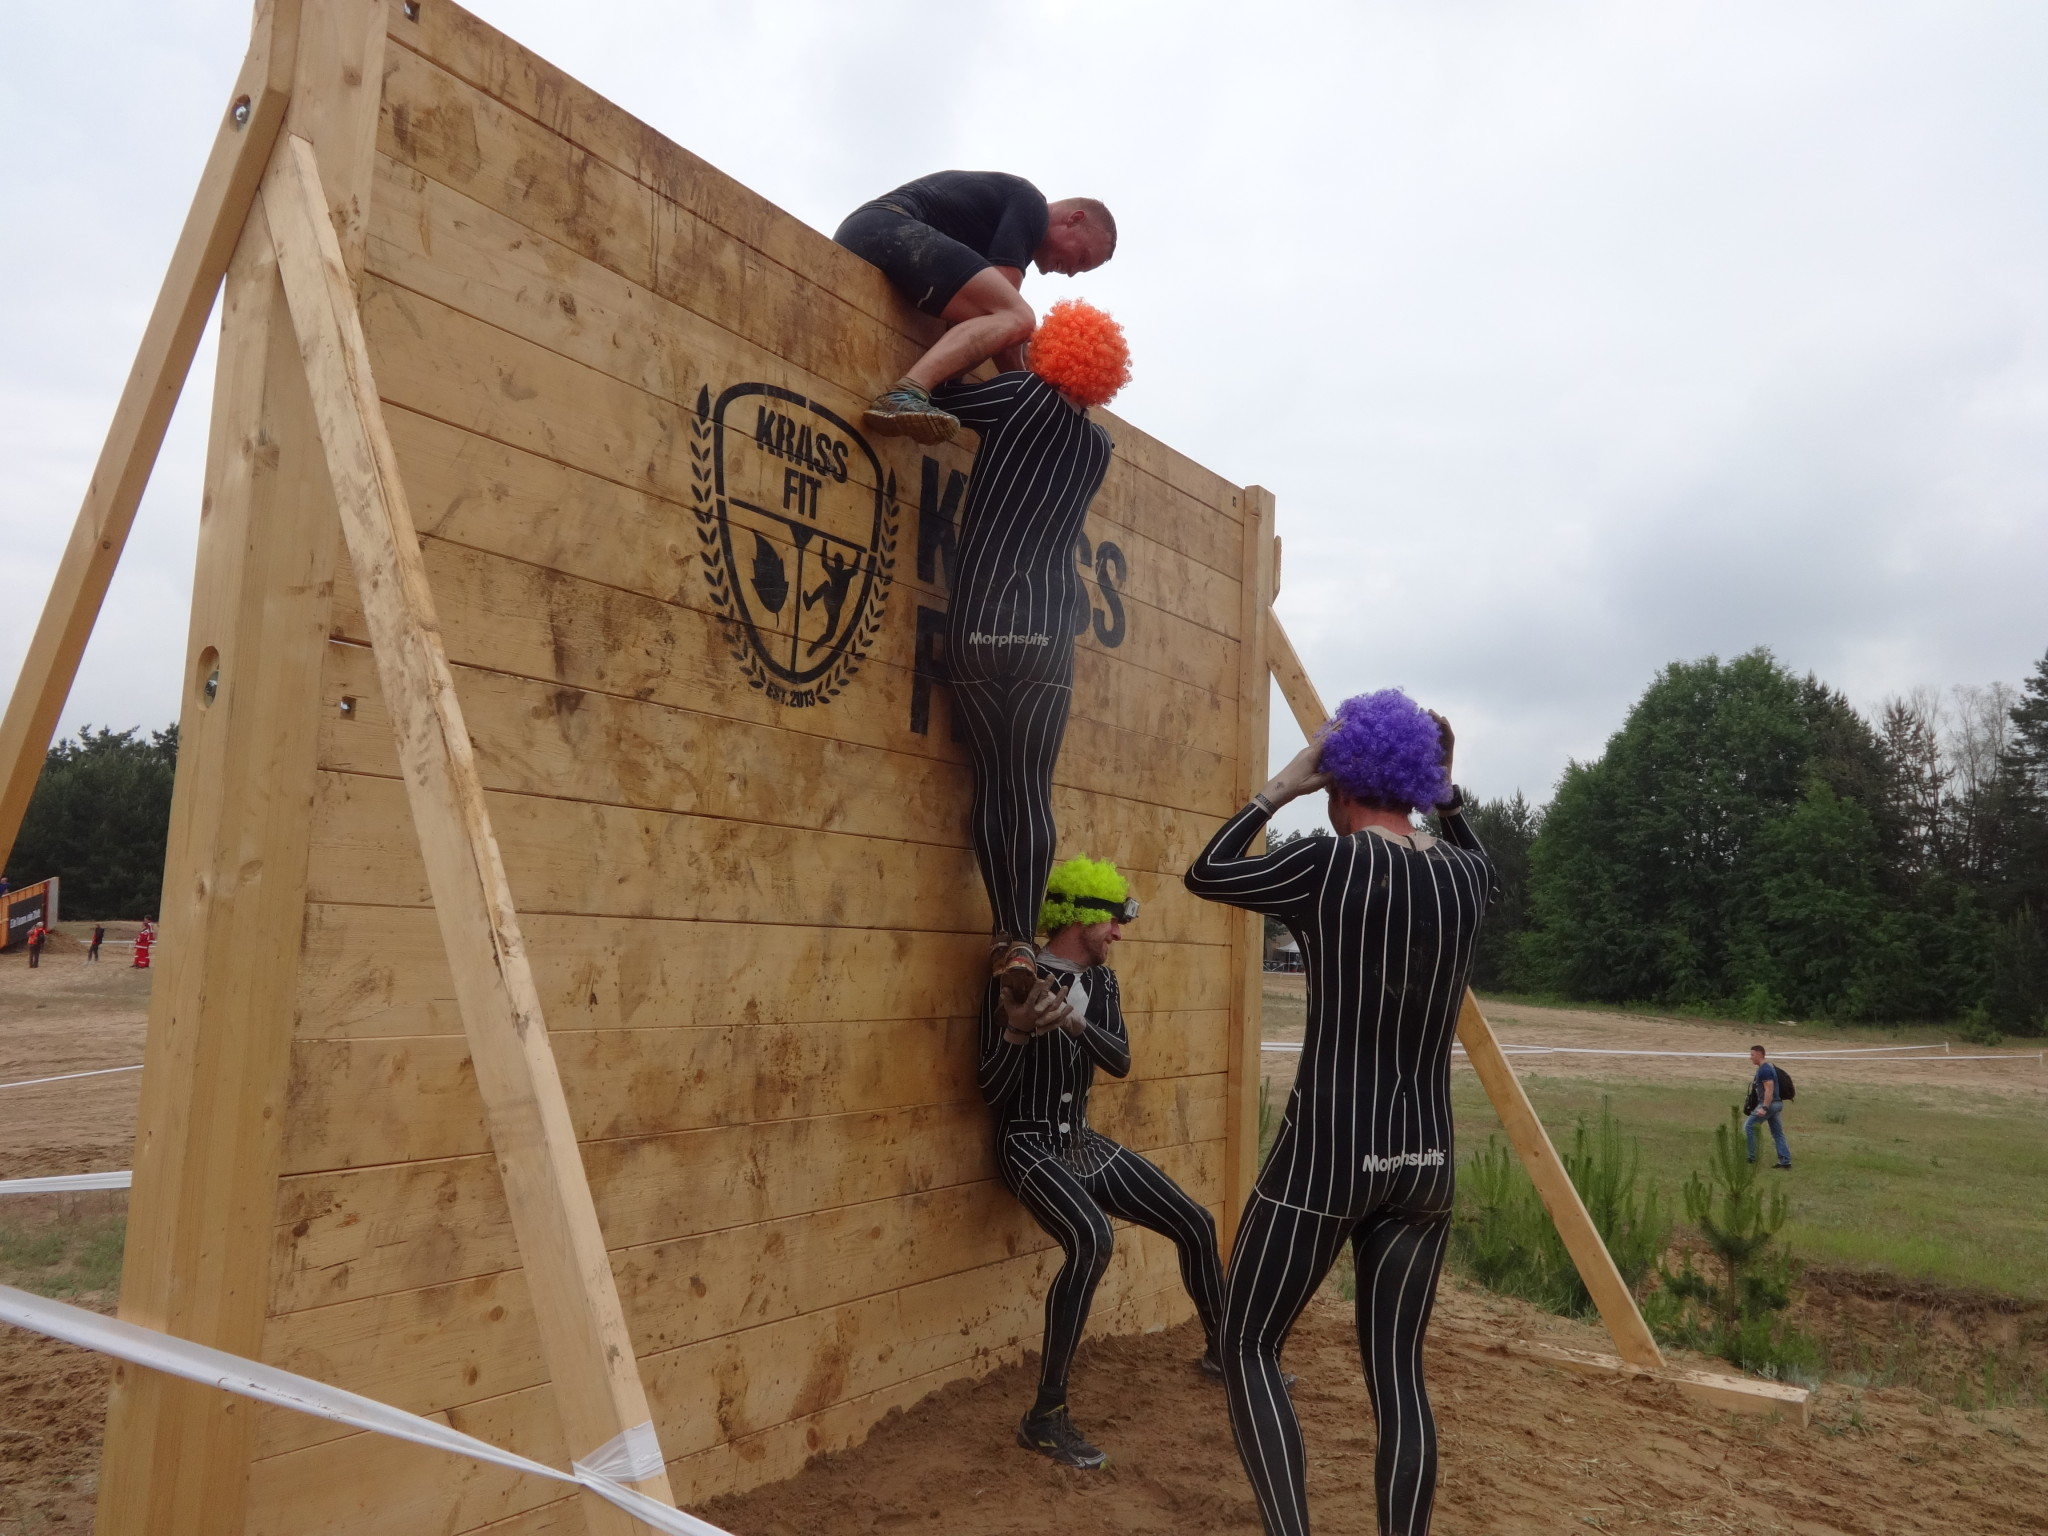 Obstacle race teamwork